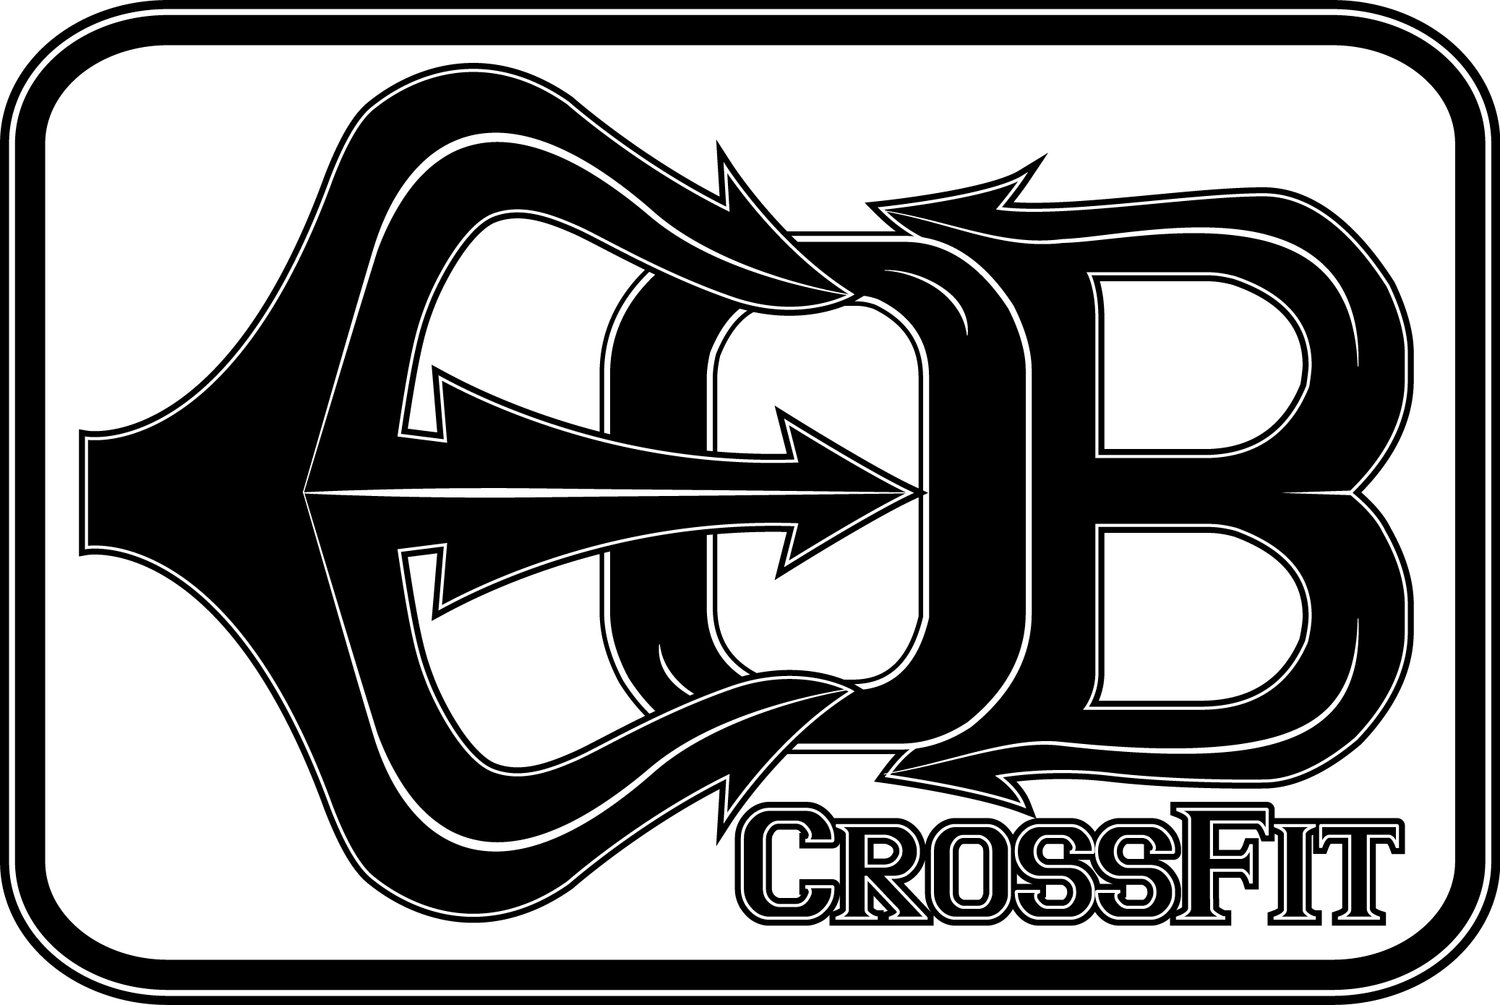 East Ormond Beach Crossfit Fitness Gym Personal Training